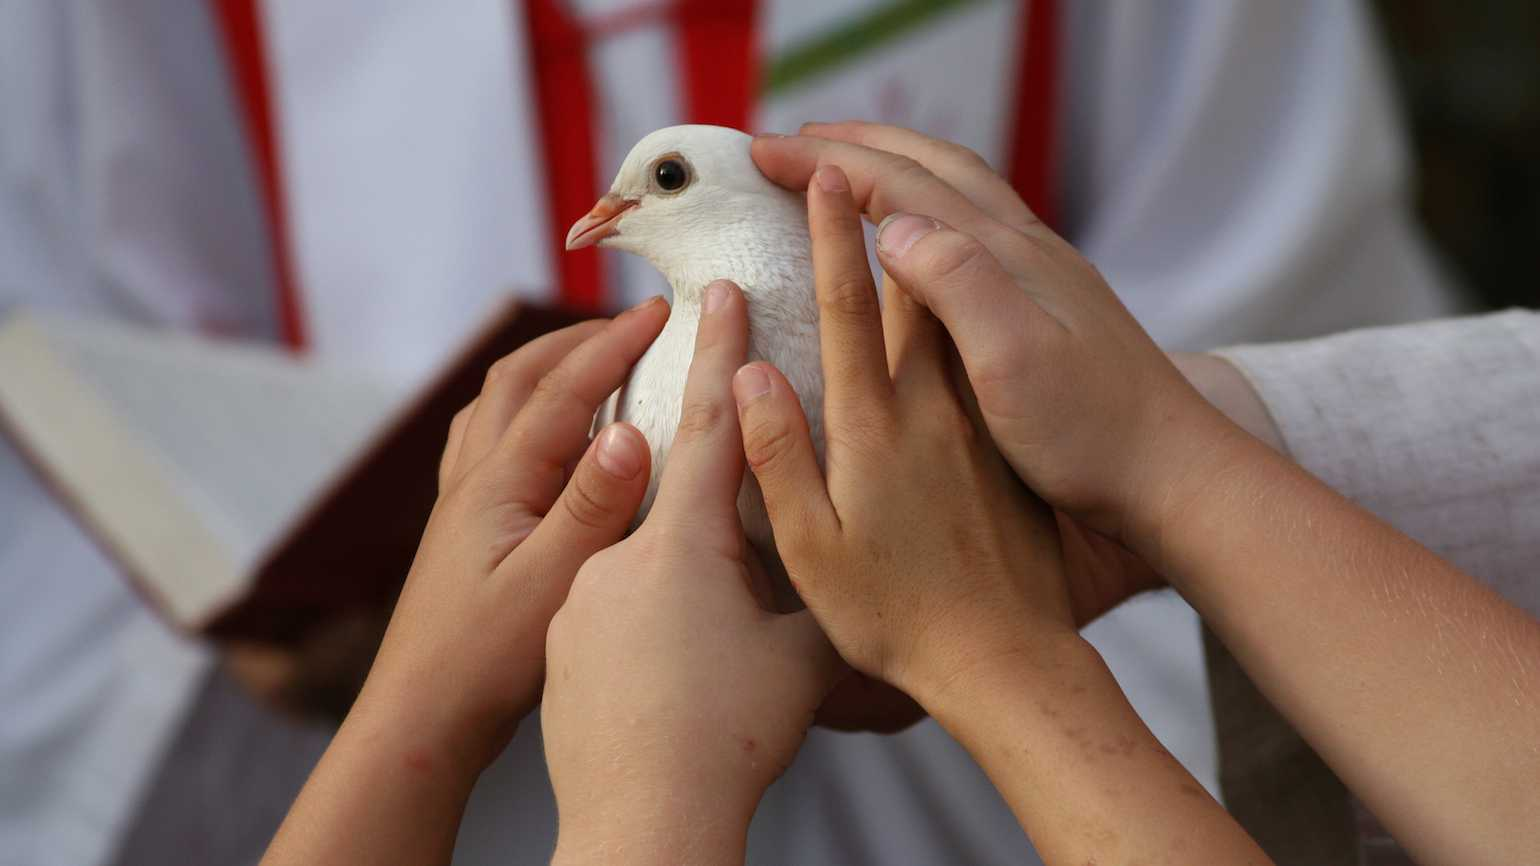 A white dove, the symbol of Pentecost